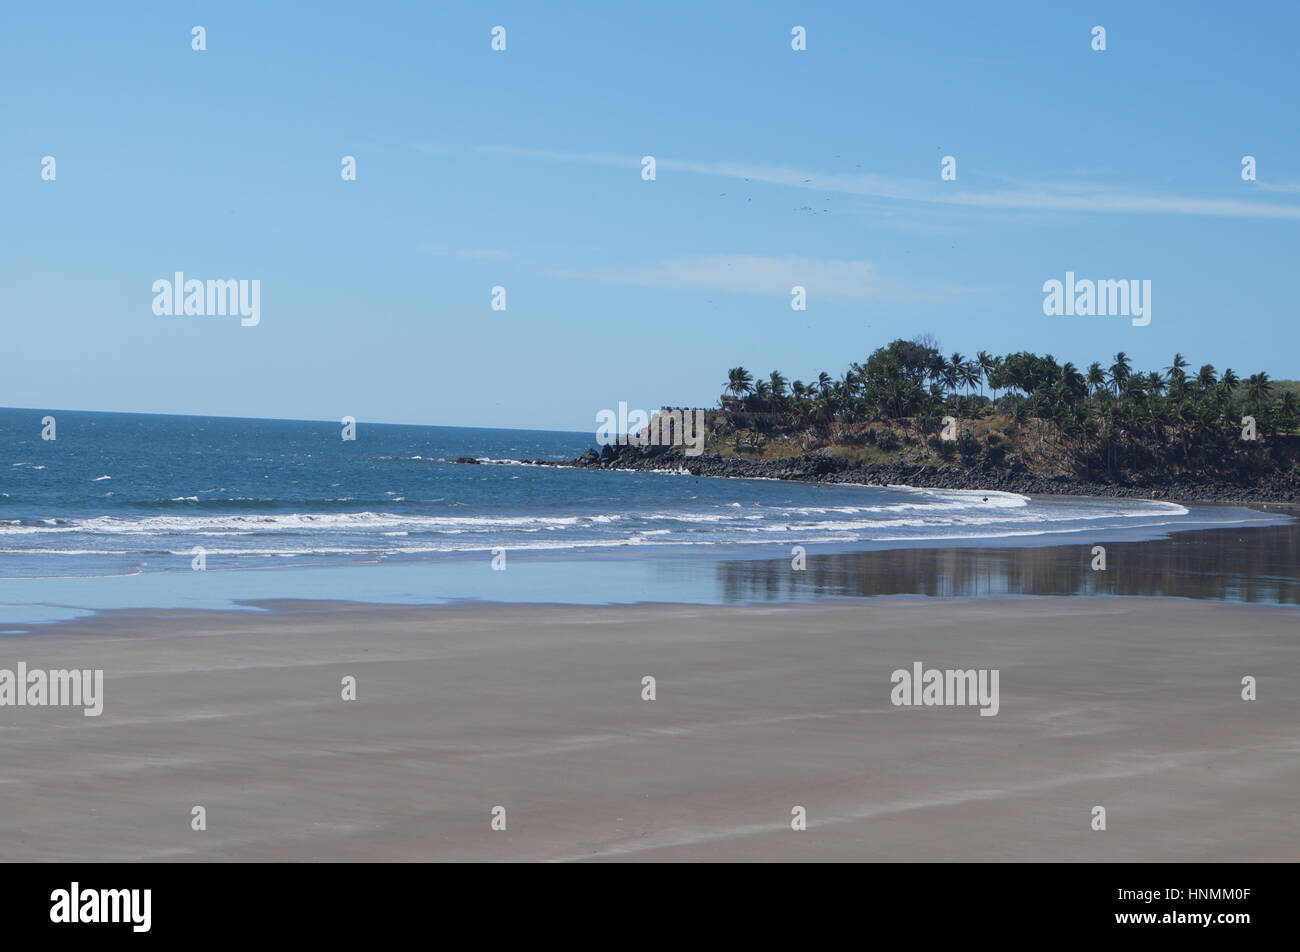 El Salvador Beaches - Stock Image